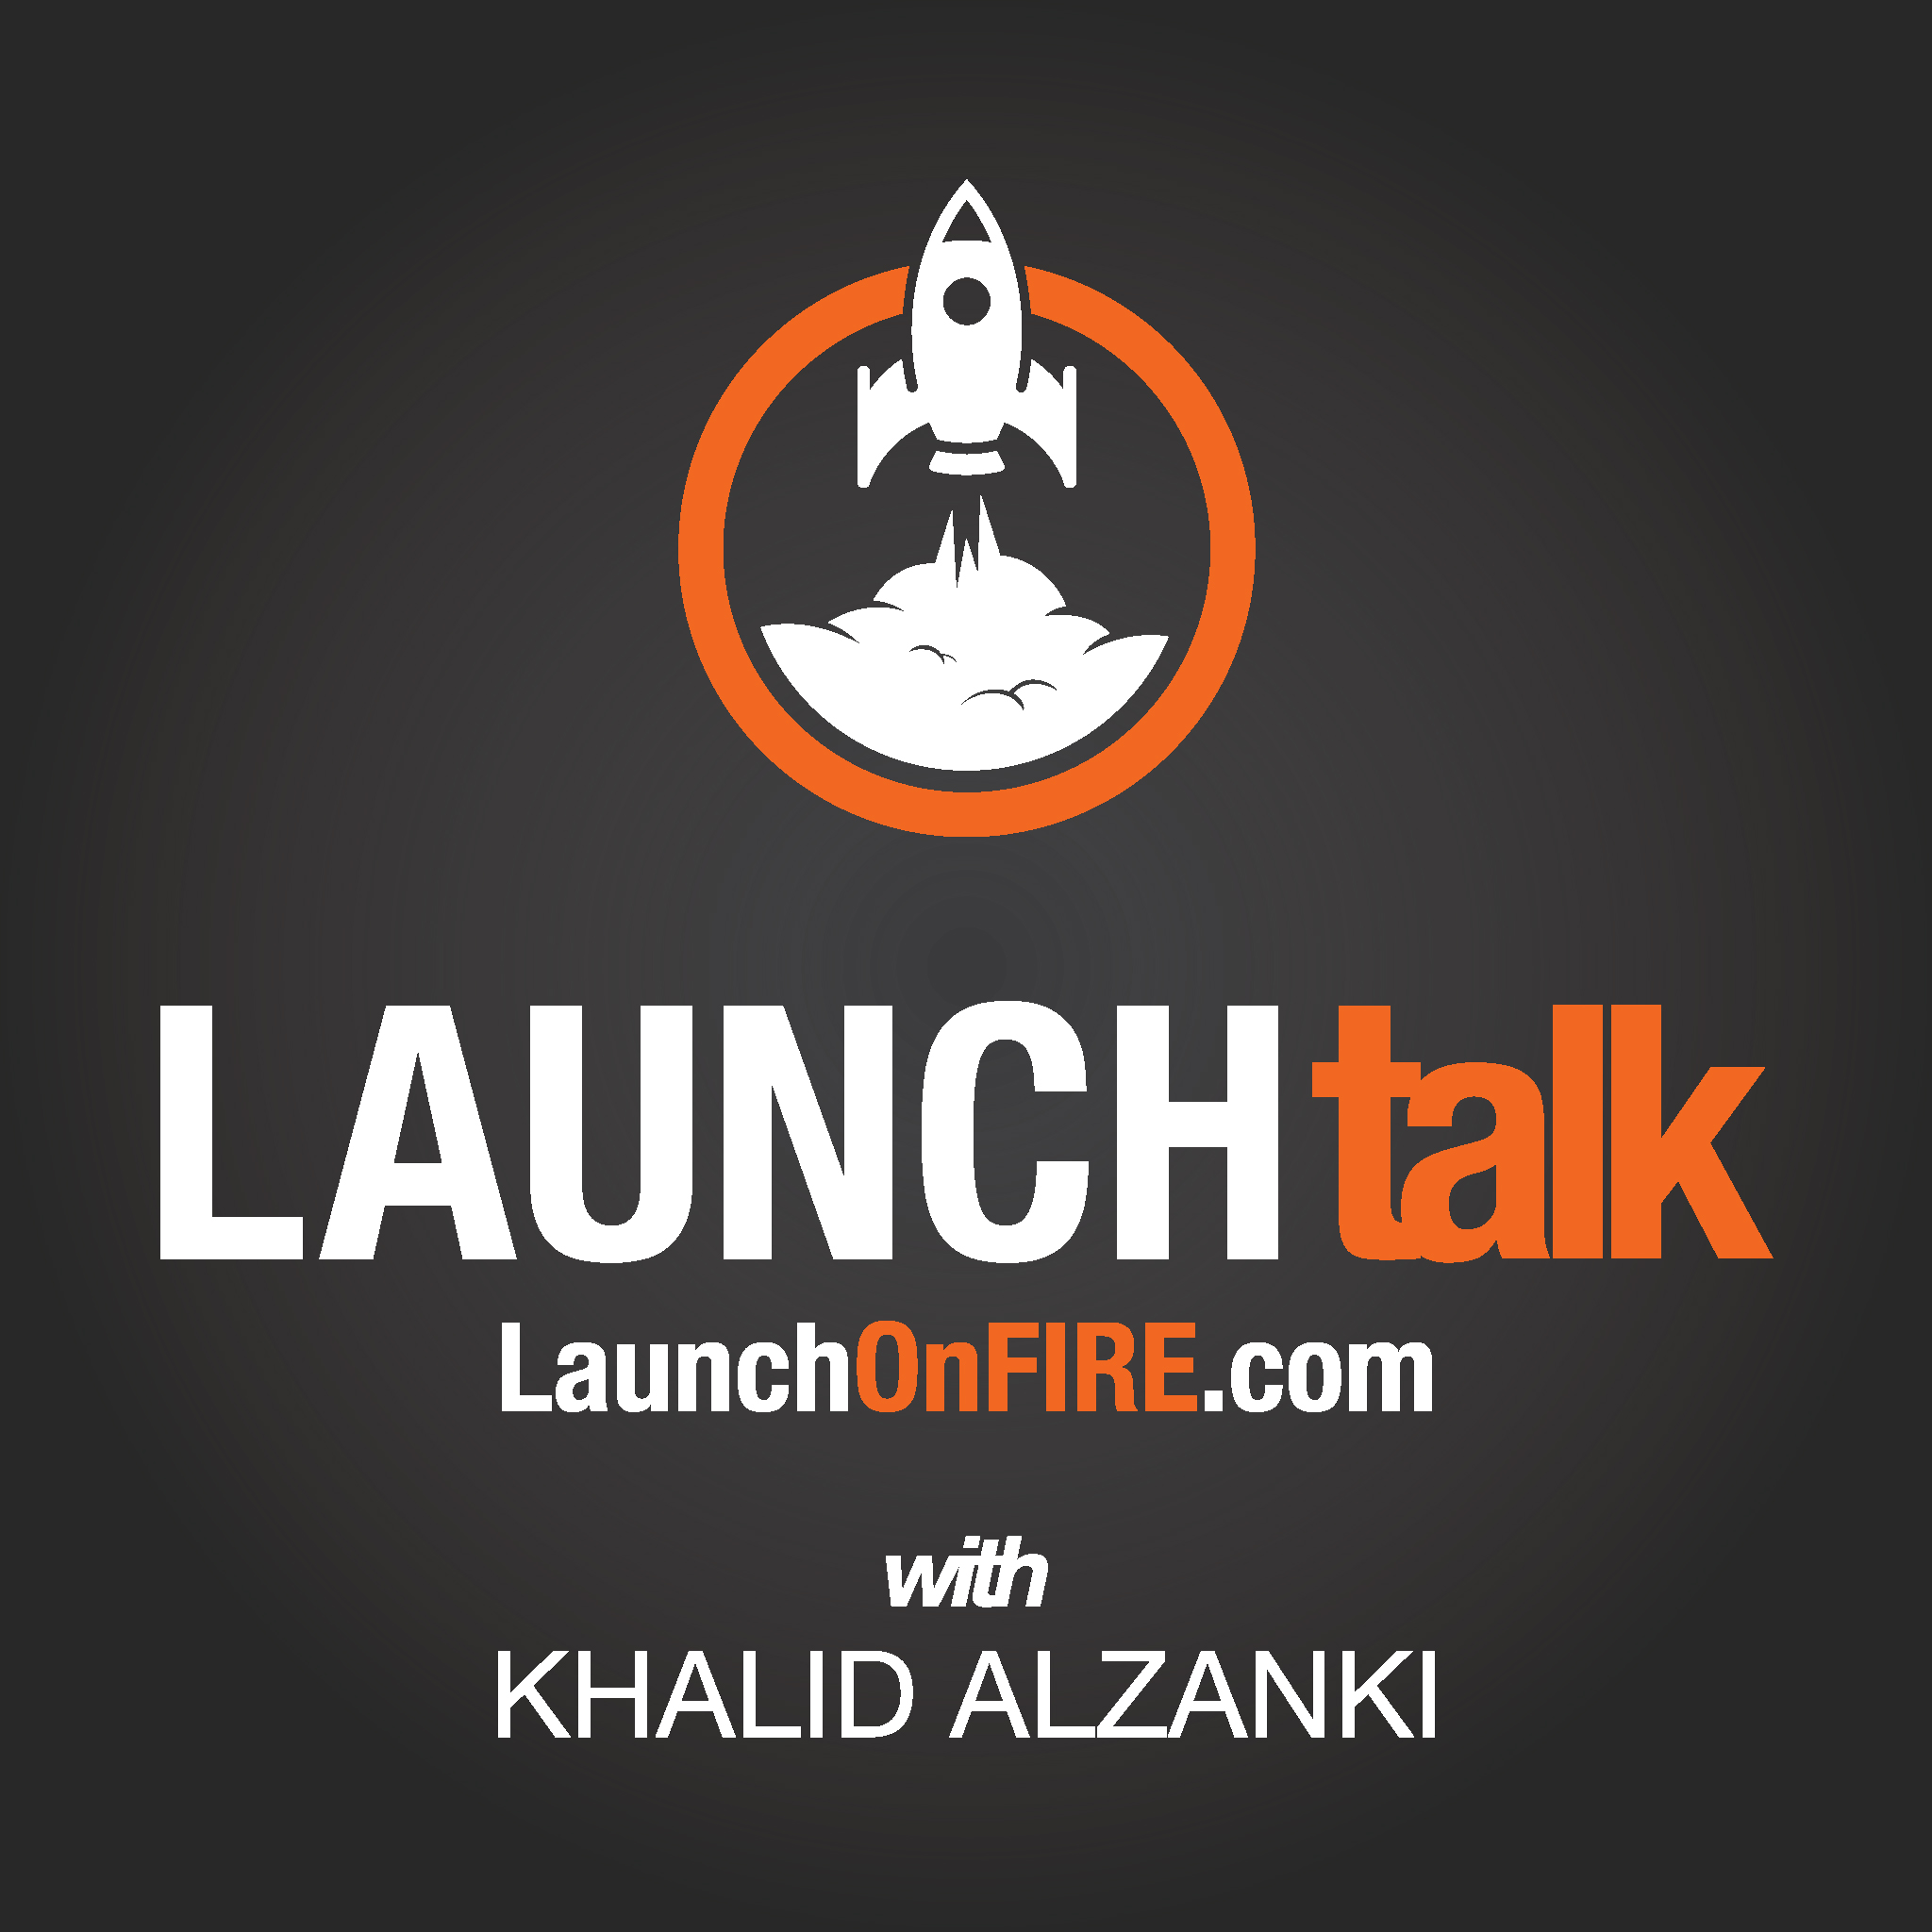 LAUNCH Talk with Khalid Al-Zanki